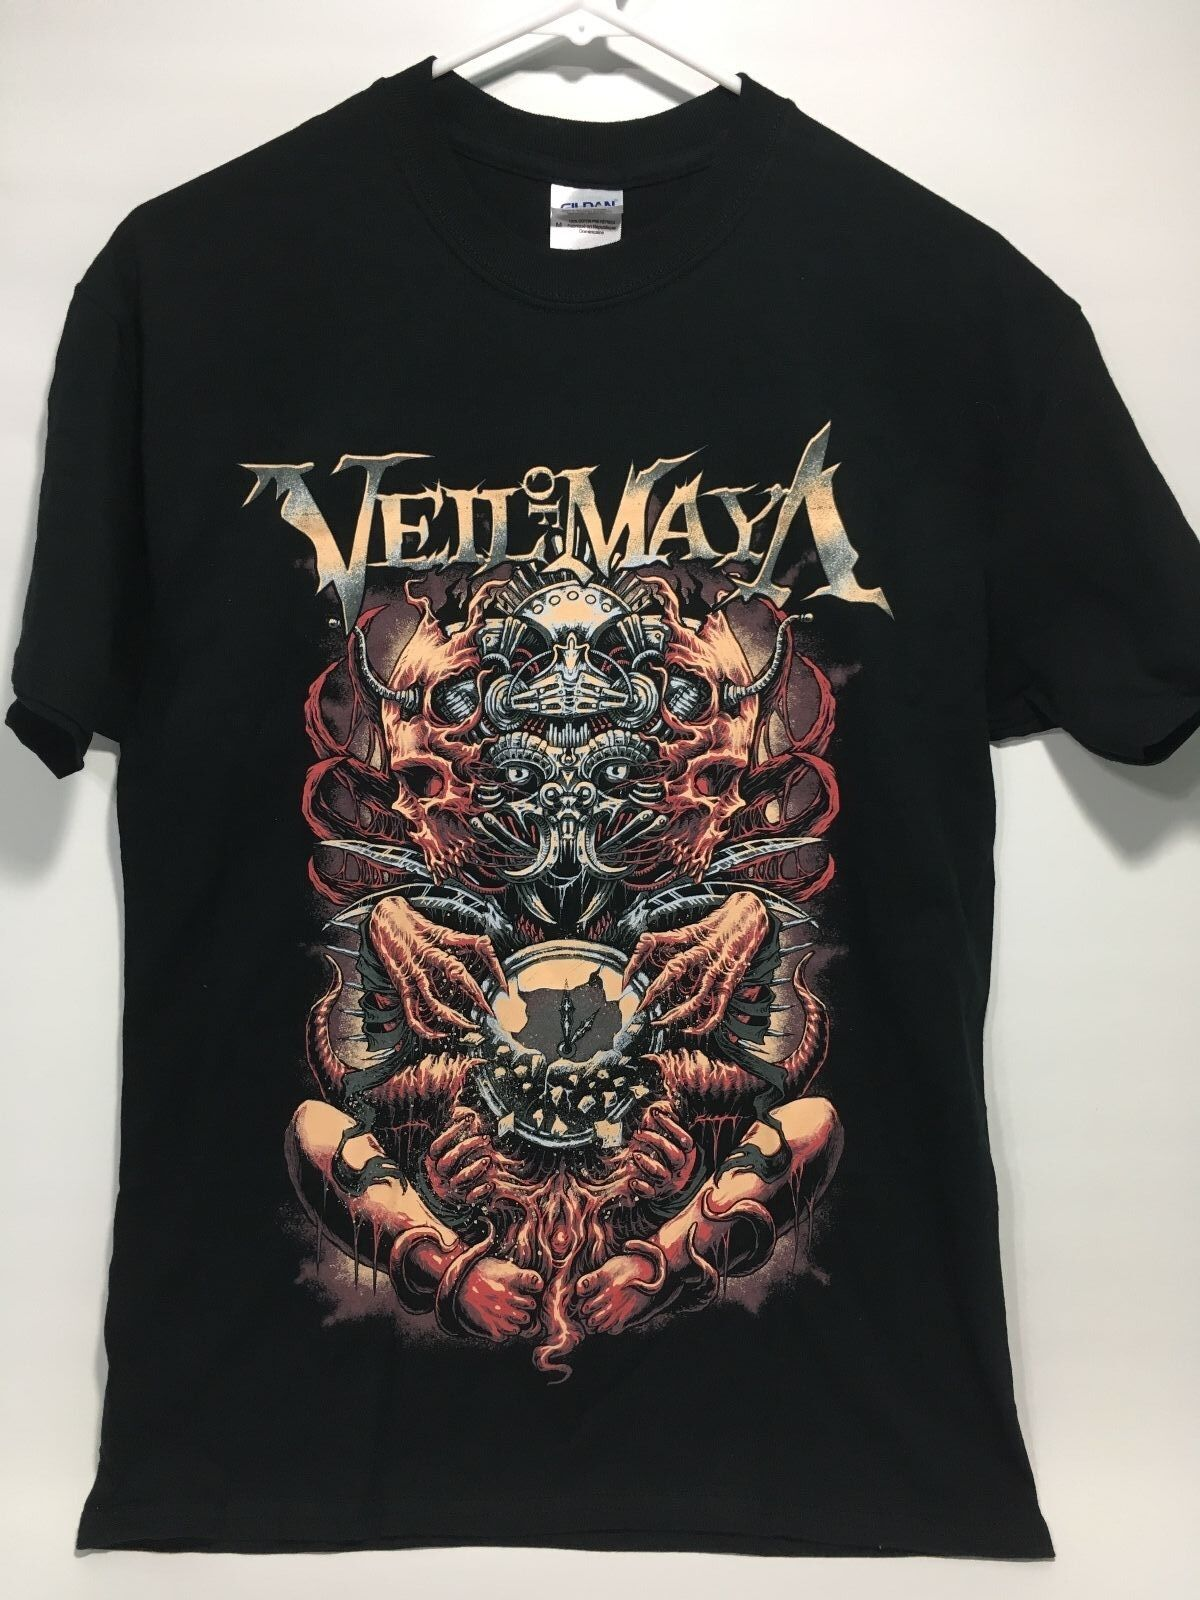 Veil of Maya Concert Tour T-Shirt Heavy Metalcore Deathcore Heavy Metal (B)